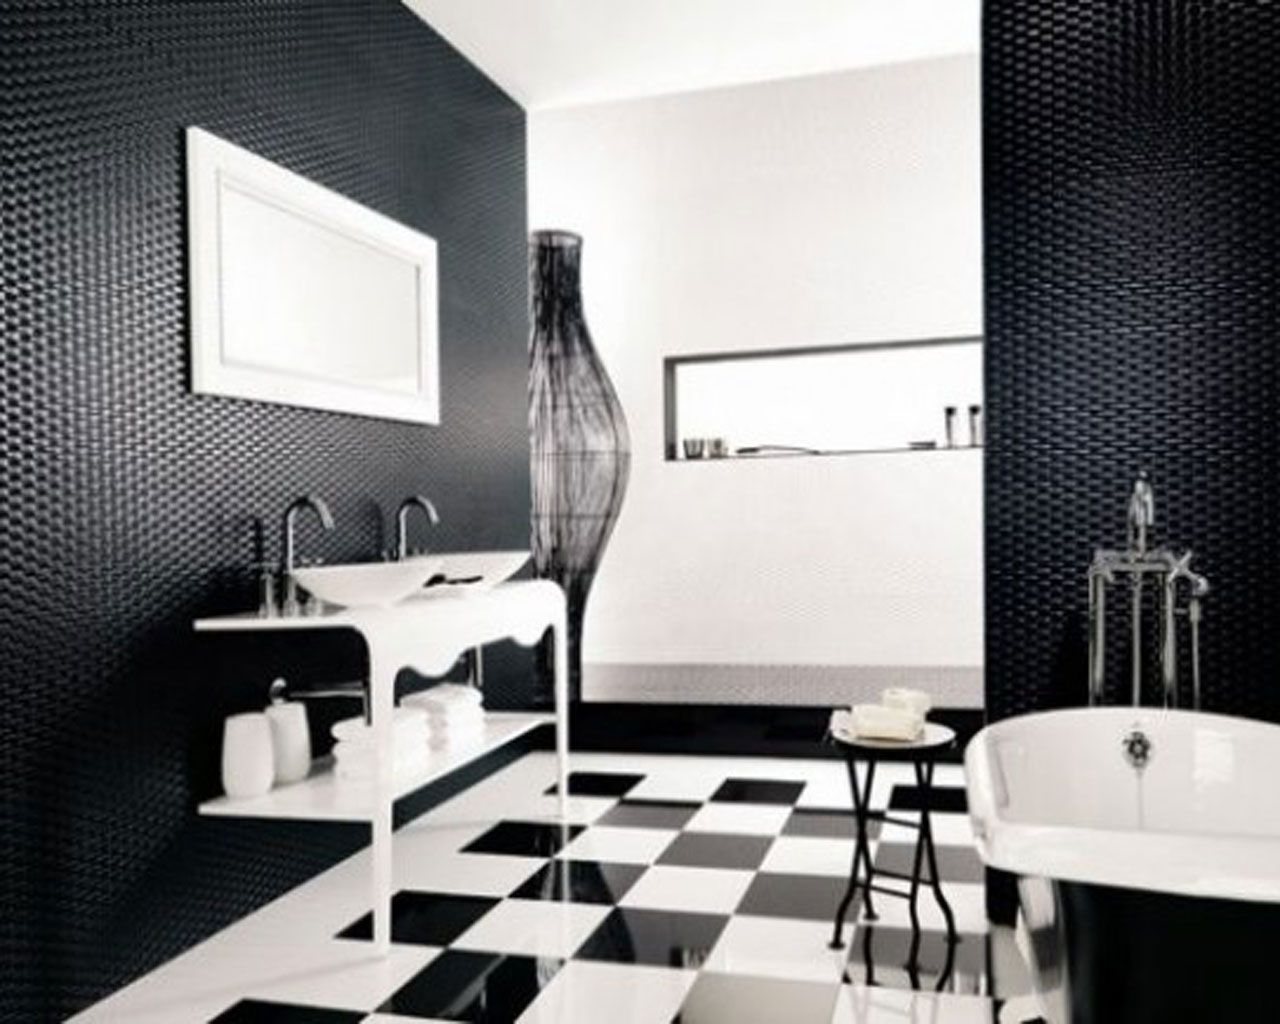 Black and white vintage bathrooms - Find This Pin And More On Bathroom Black White